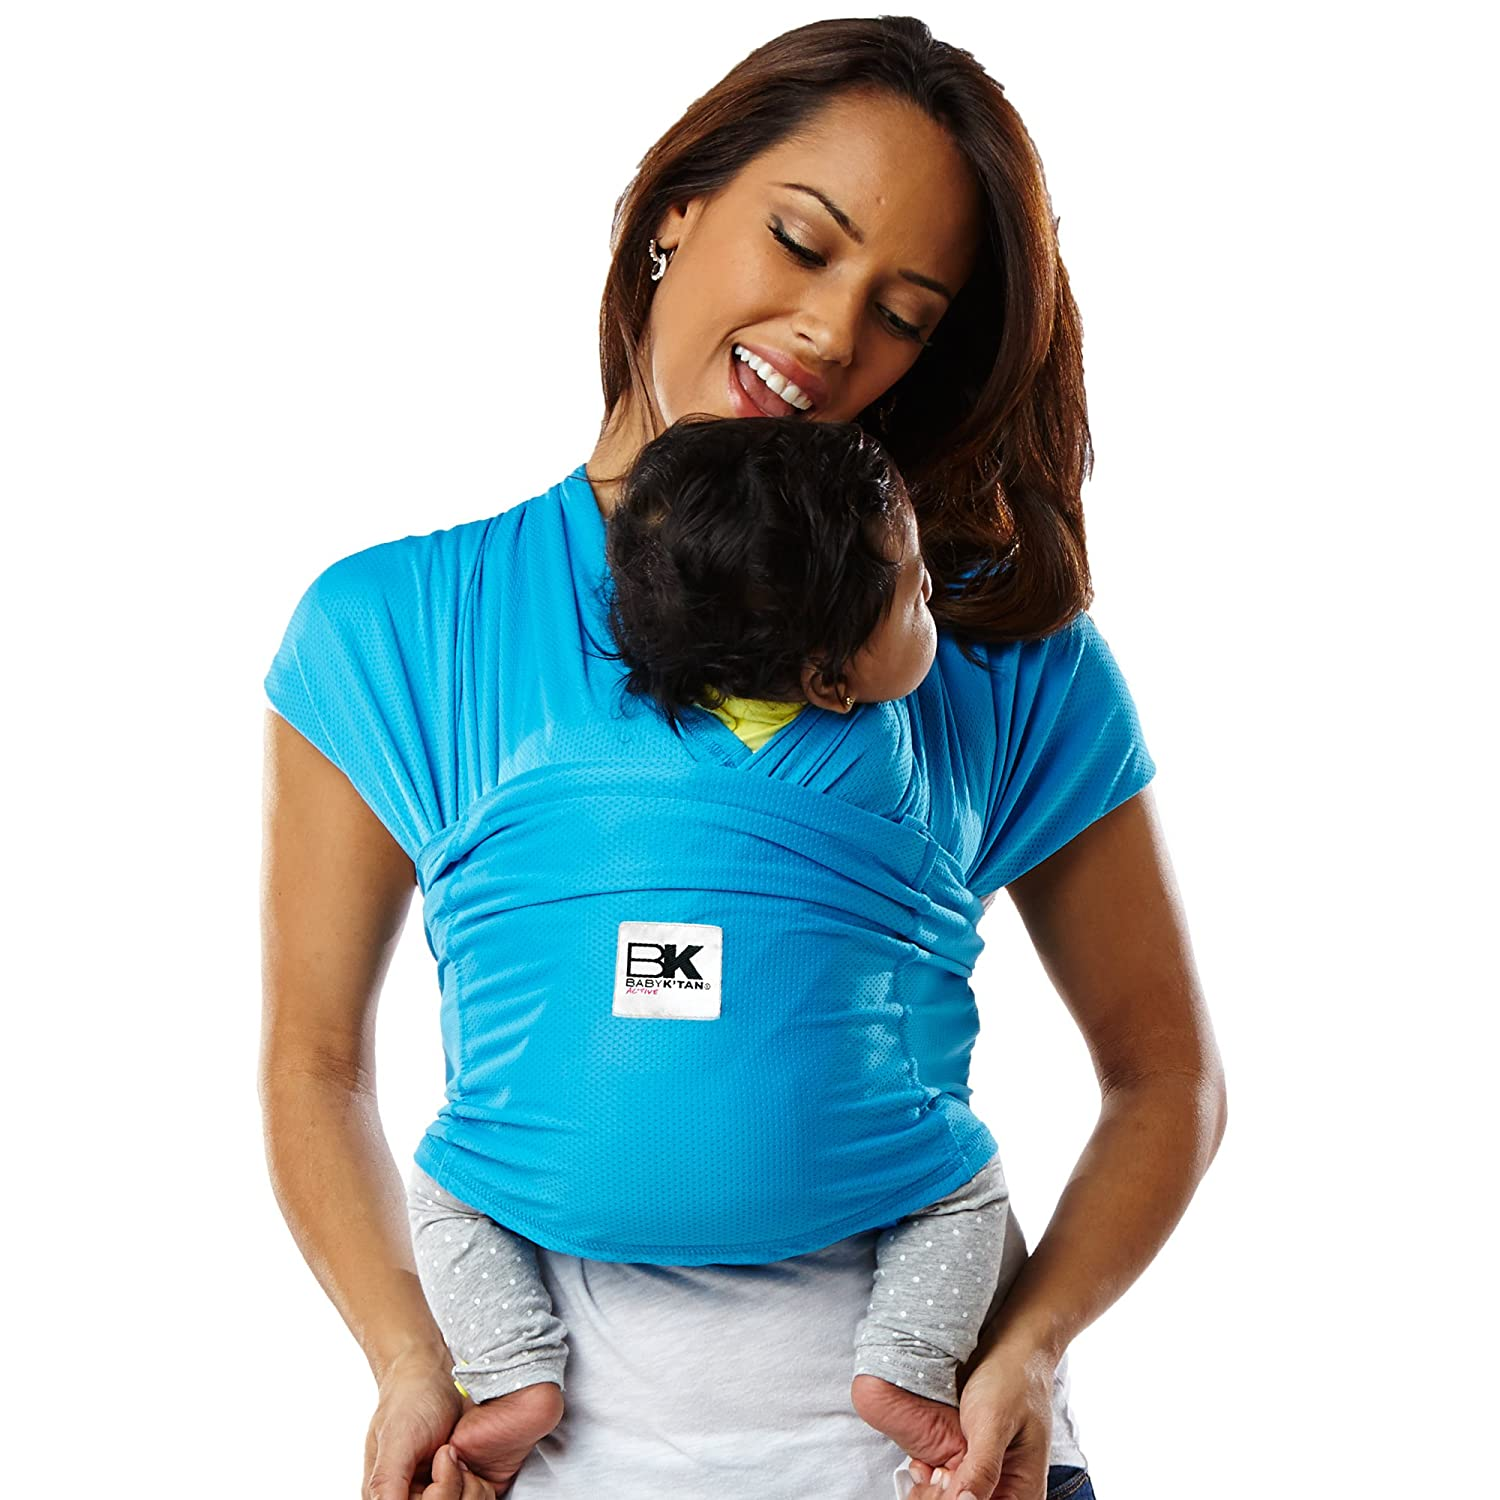 Baby K tan Active Baby Wrap Carrier, Infant and Child Sling – Simple Wrap Holder for Babywearing – No Rings or Buckles – Carry Newborn up to 35 Pound, Ocean Blue, Small Women 6-8 Men 37-38